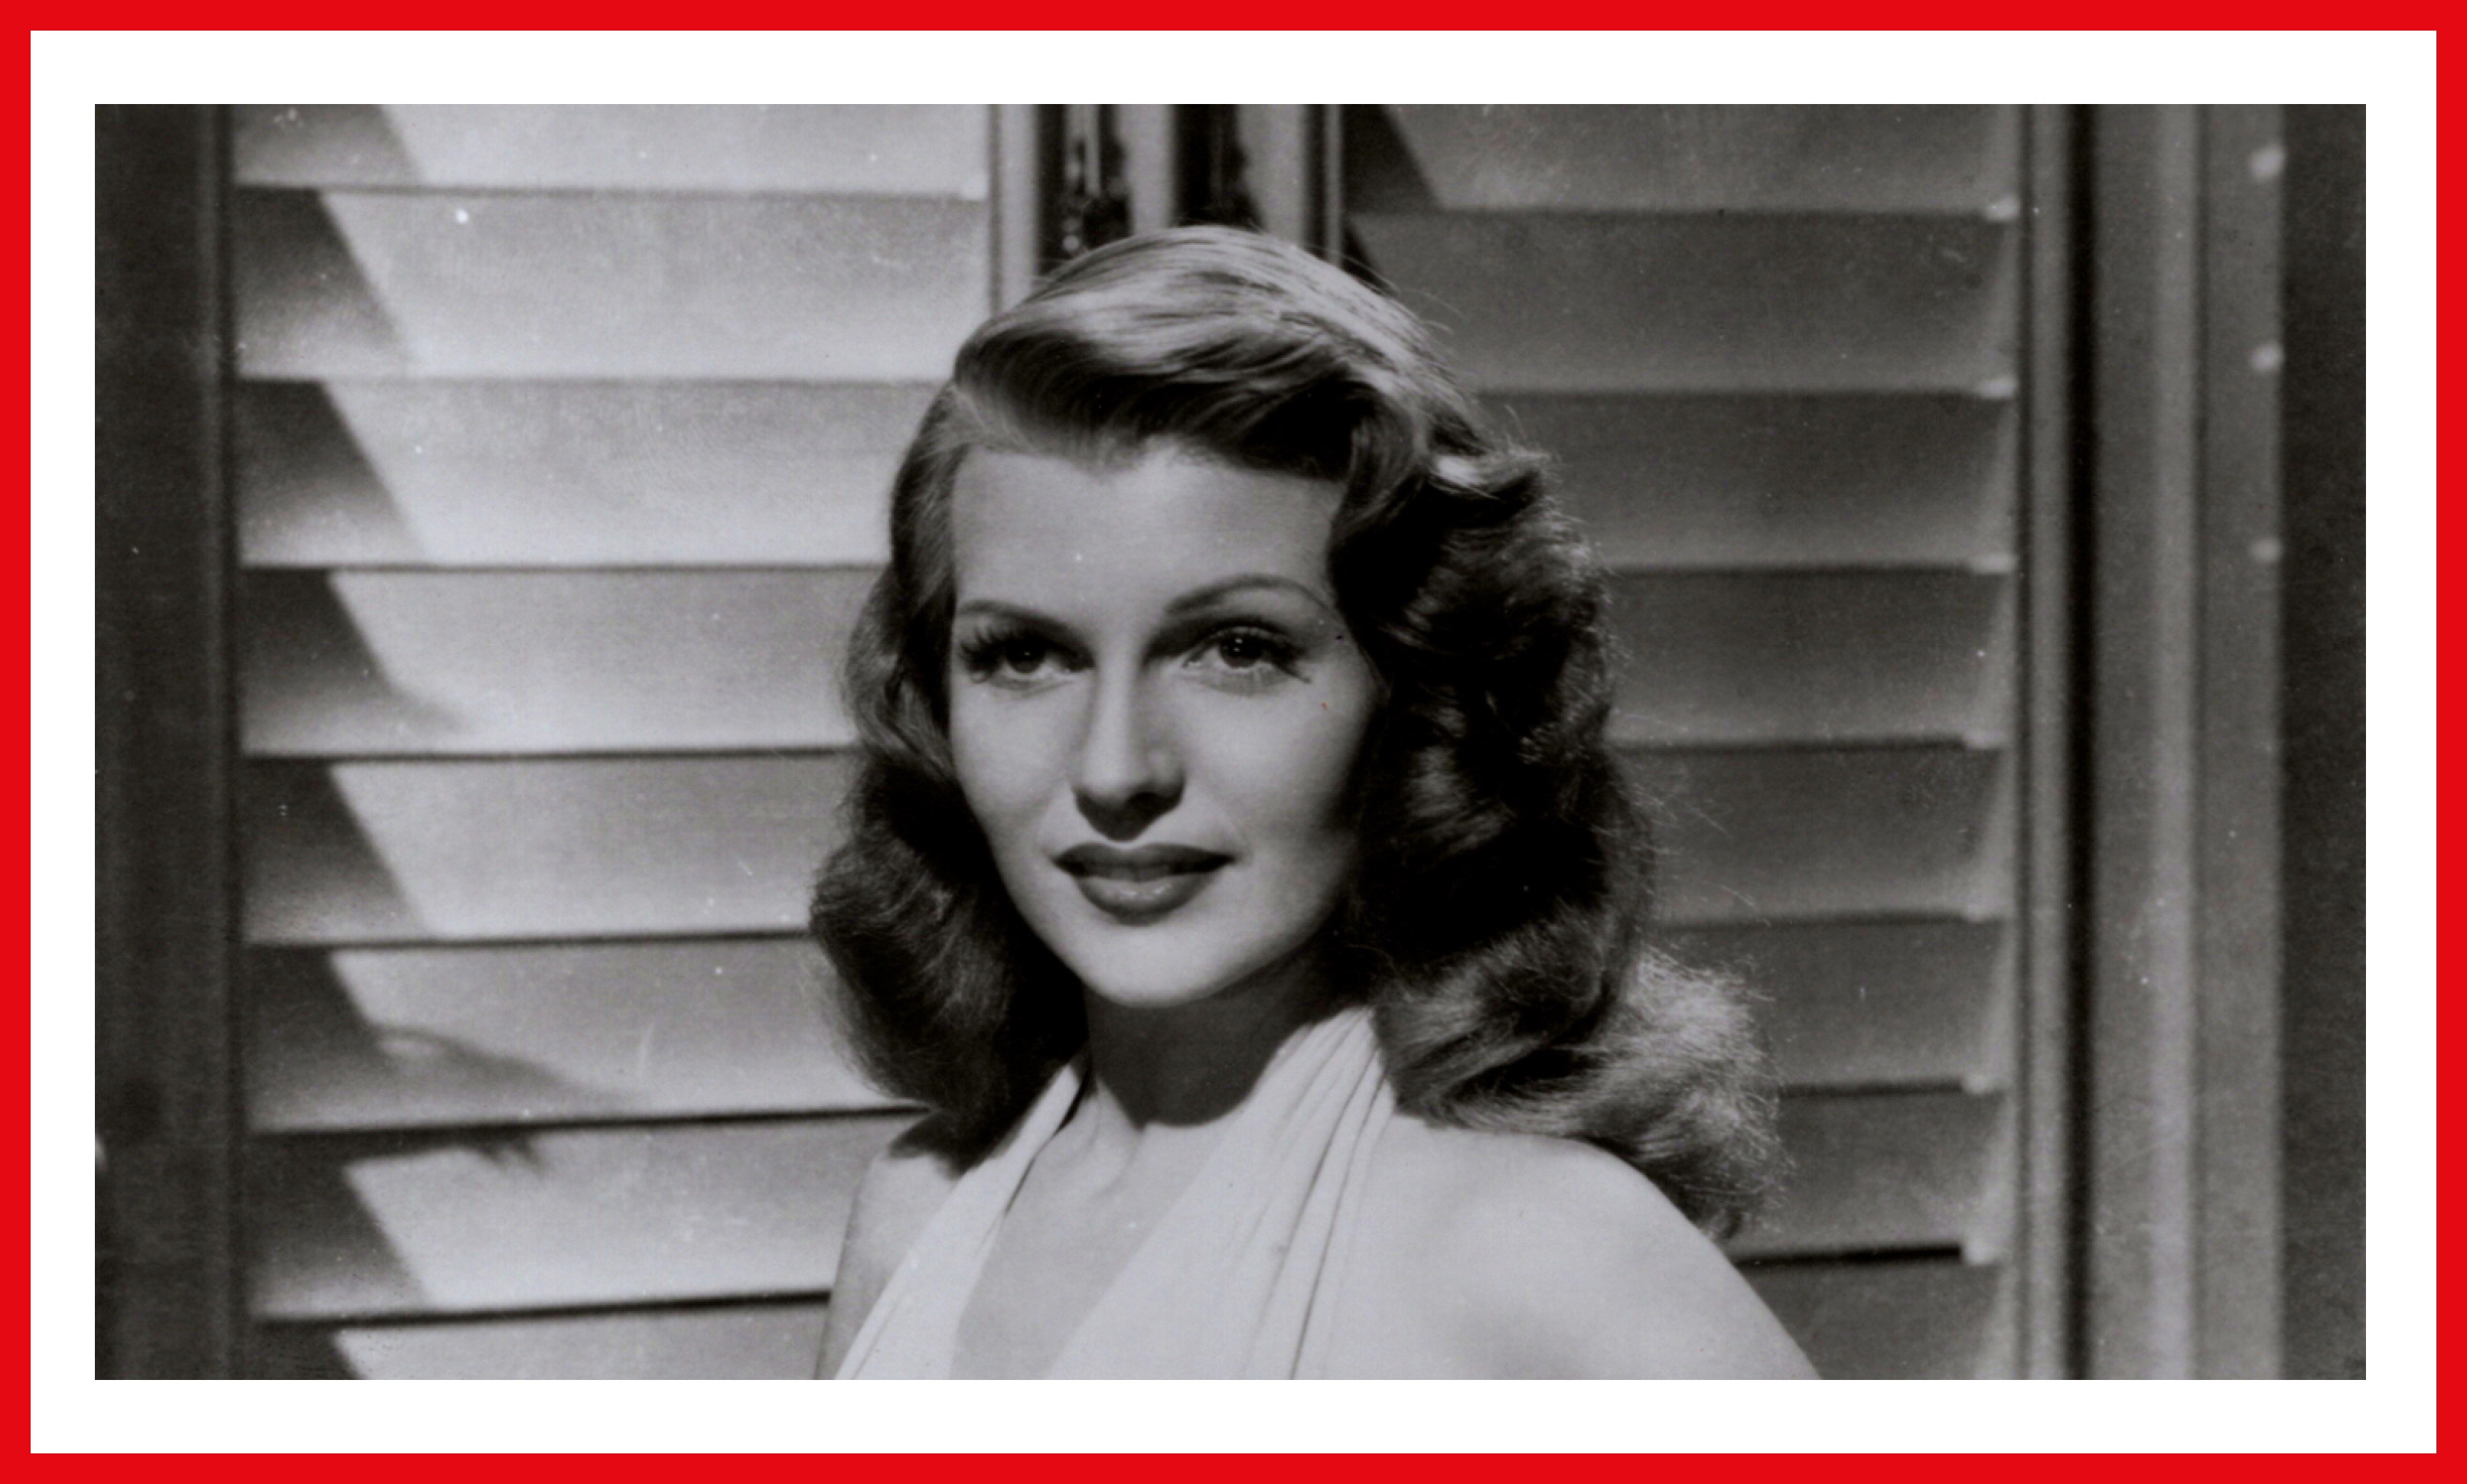 Hayworth as the title character, looking glamorous with tressed hair in a white halter dress